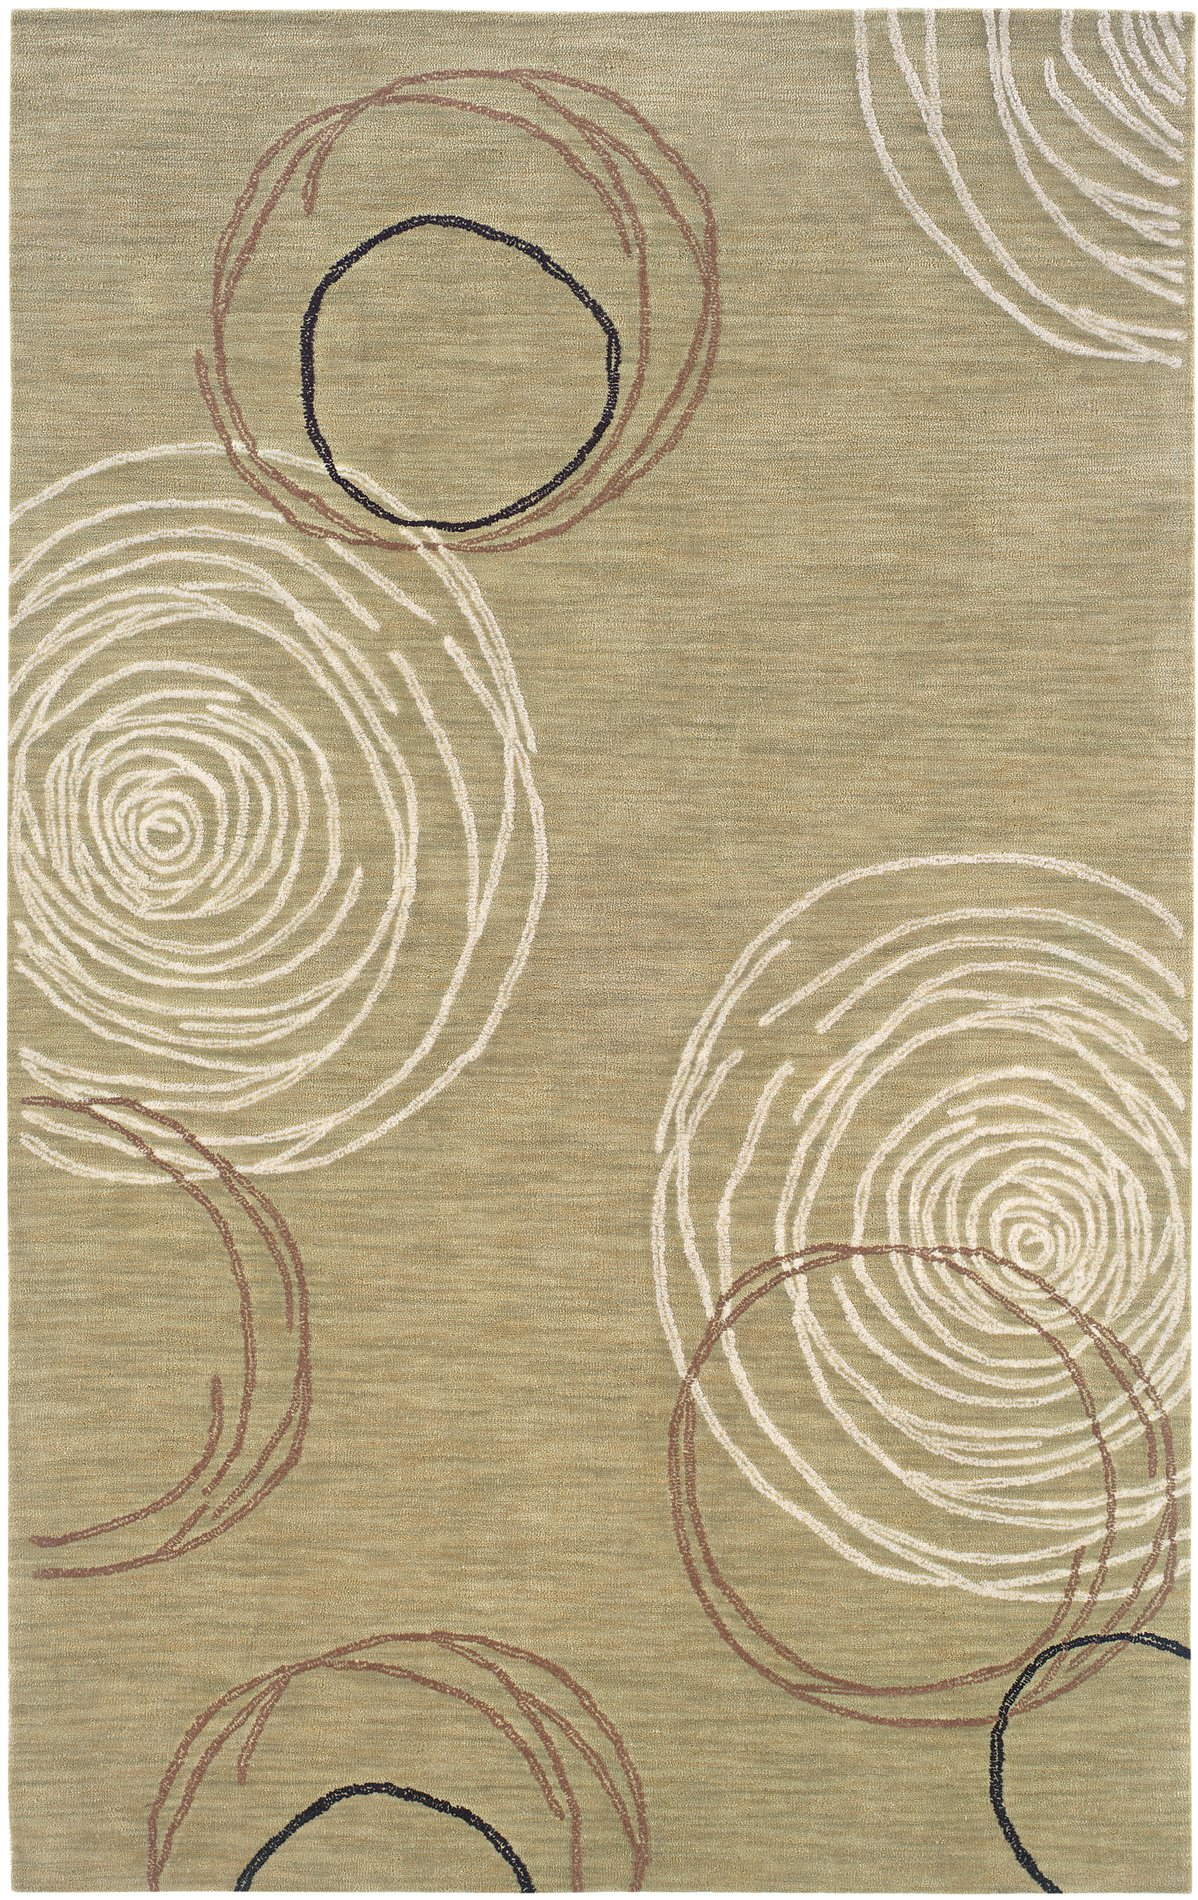 Yosemite Home Decor Sphinx L85404 Lotus Beige Modern Contemporary Rug Spx 85404